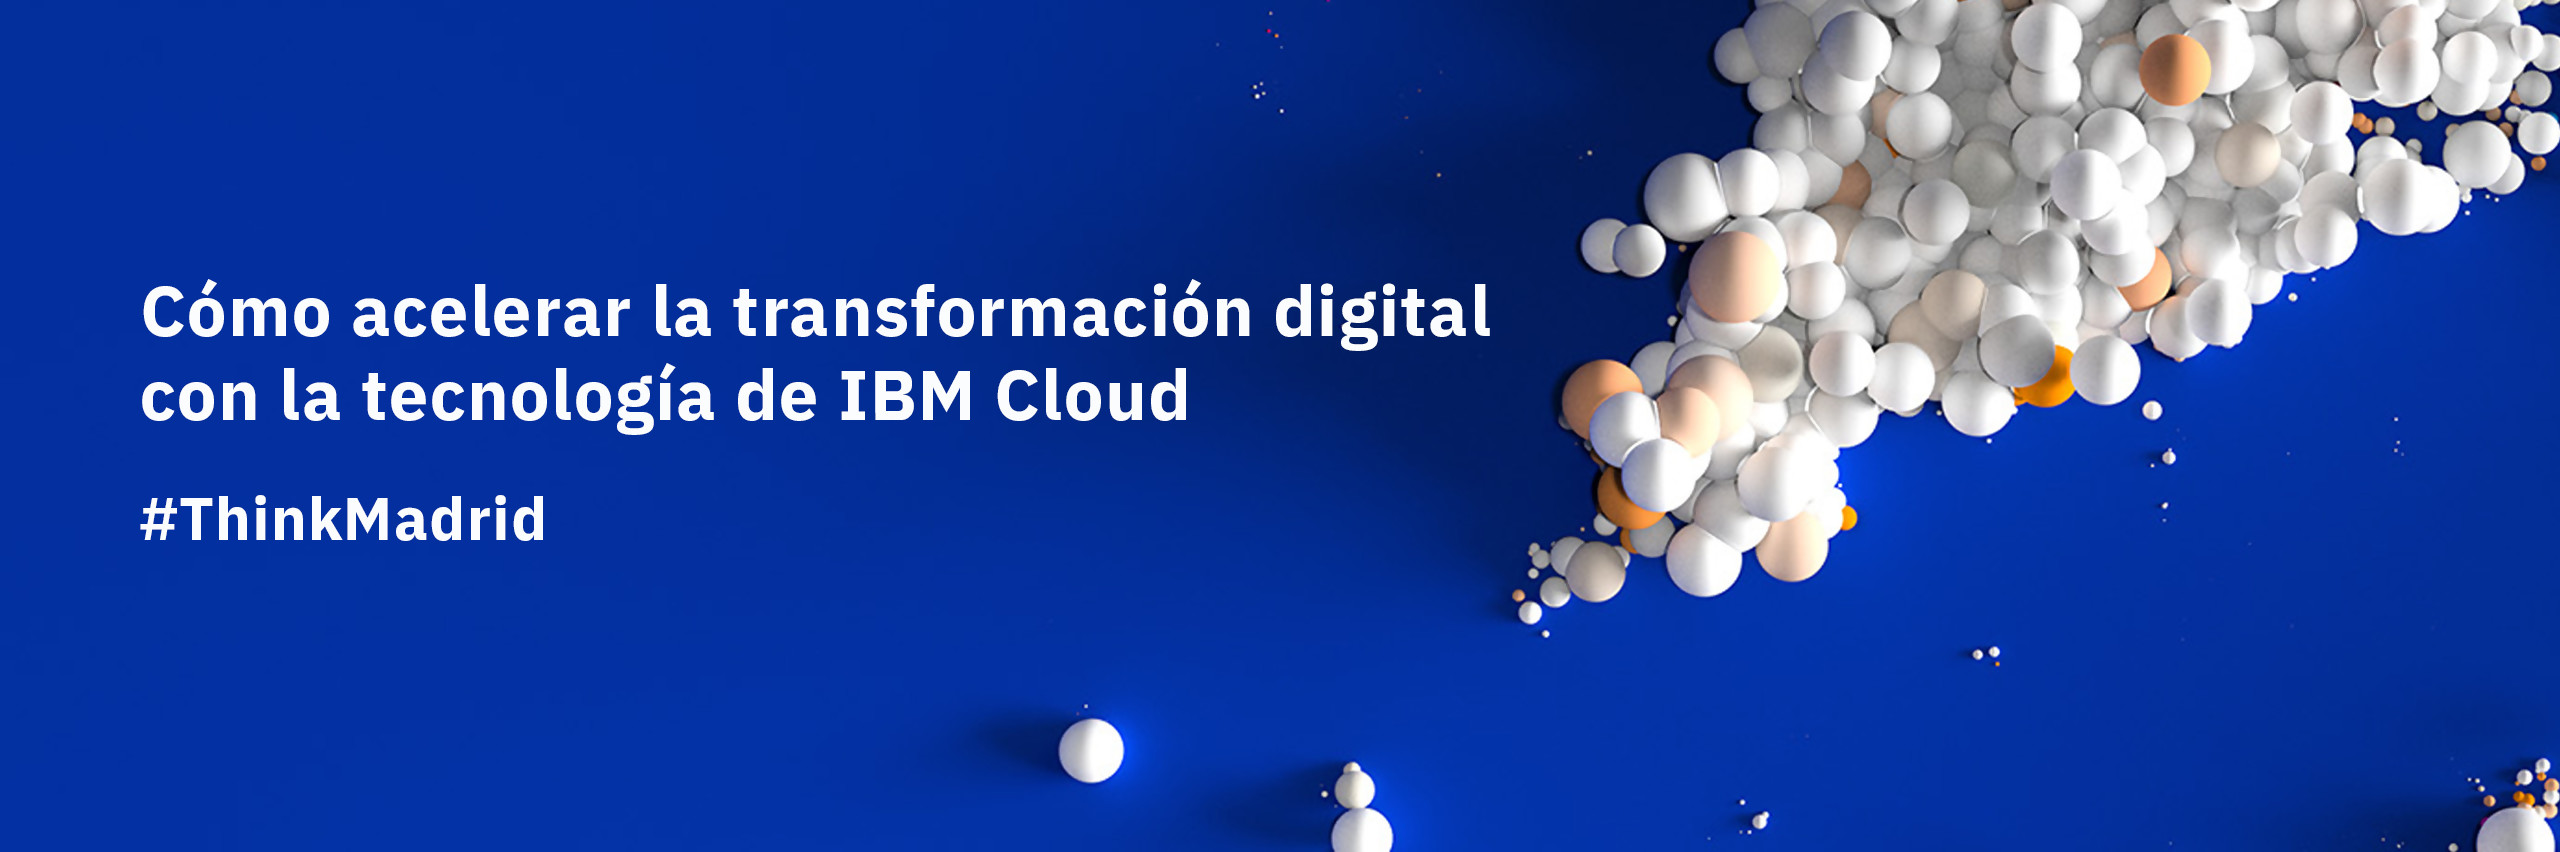 Transformación digital con IBM Cloud